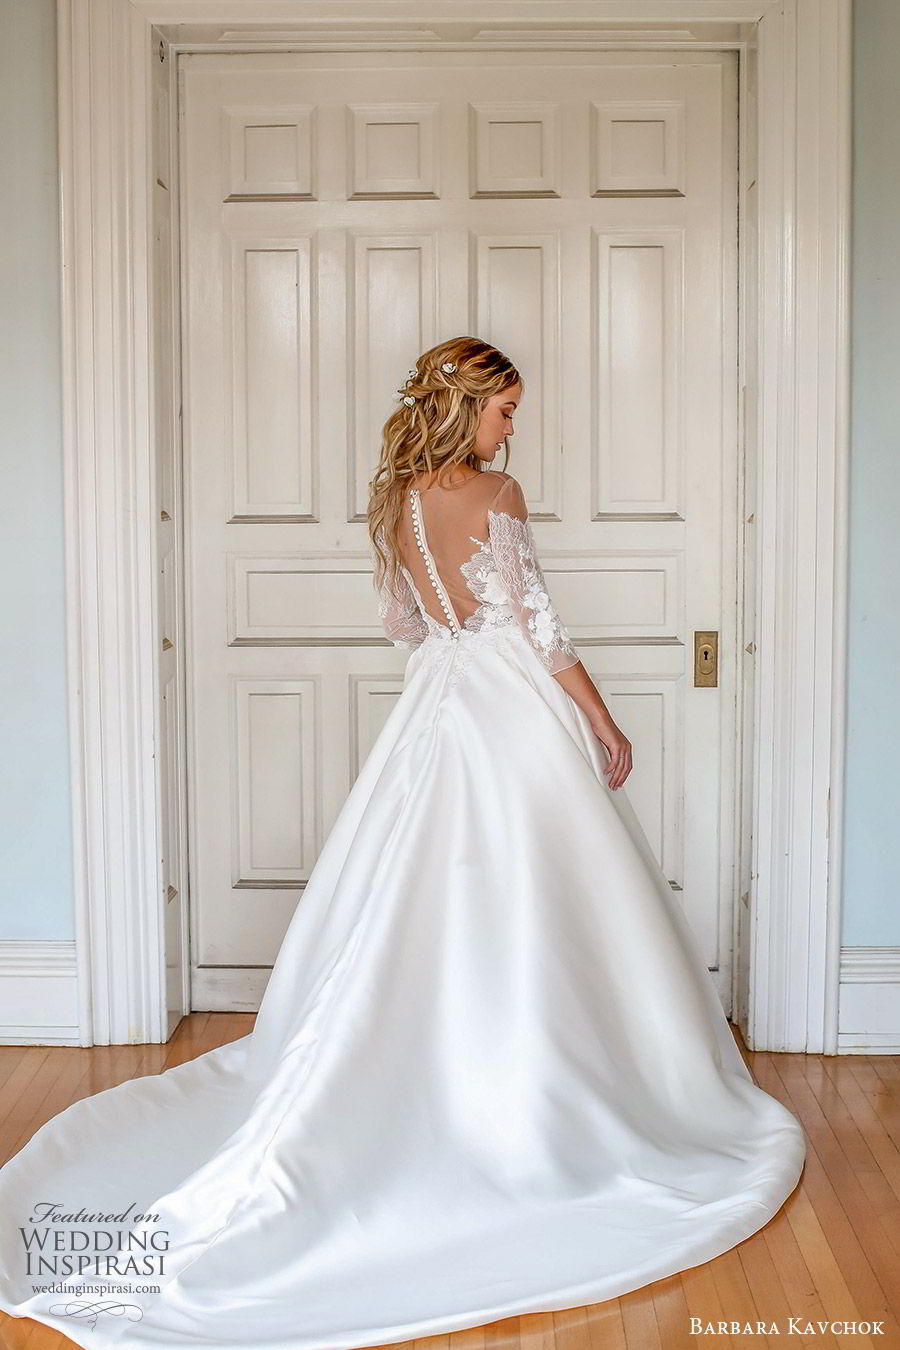 barbara kavchok fall 2019 bridal off shoulder 3 quarter sleeves sweetheart neckline illusion jewel embellished bodice a line ball gown (6) bv illusion back chapel train elegant classic romantic